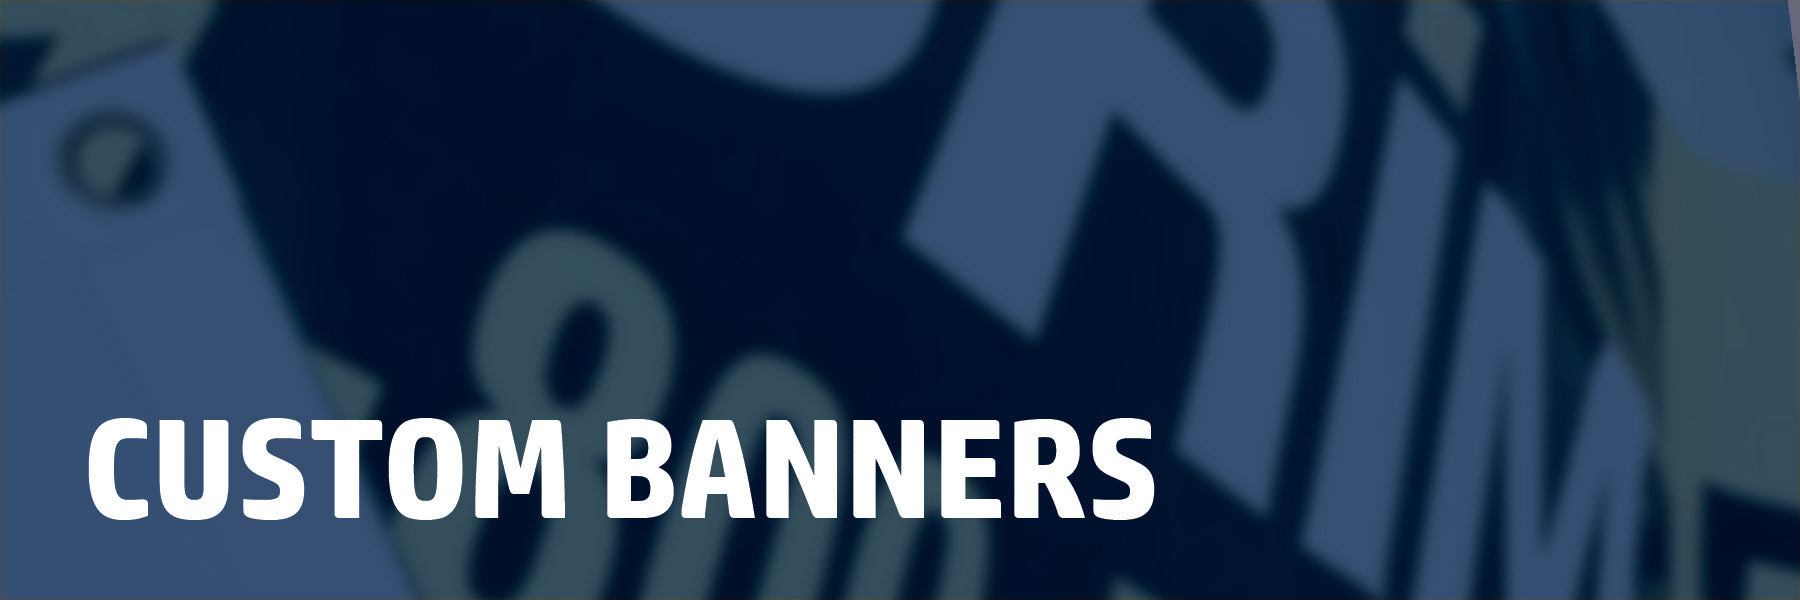 custom vinyl banners, full color banner printing, indoor and outdoor banners with grommets